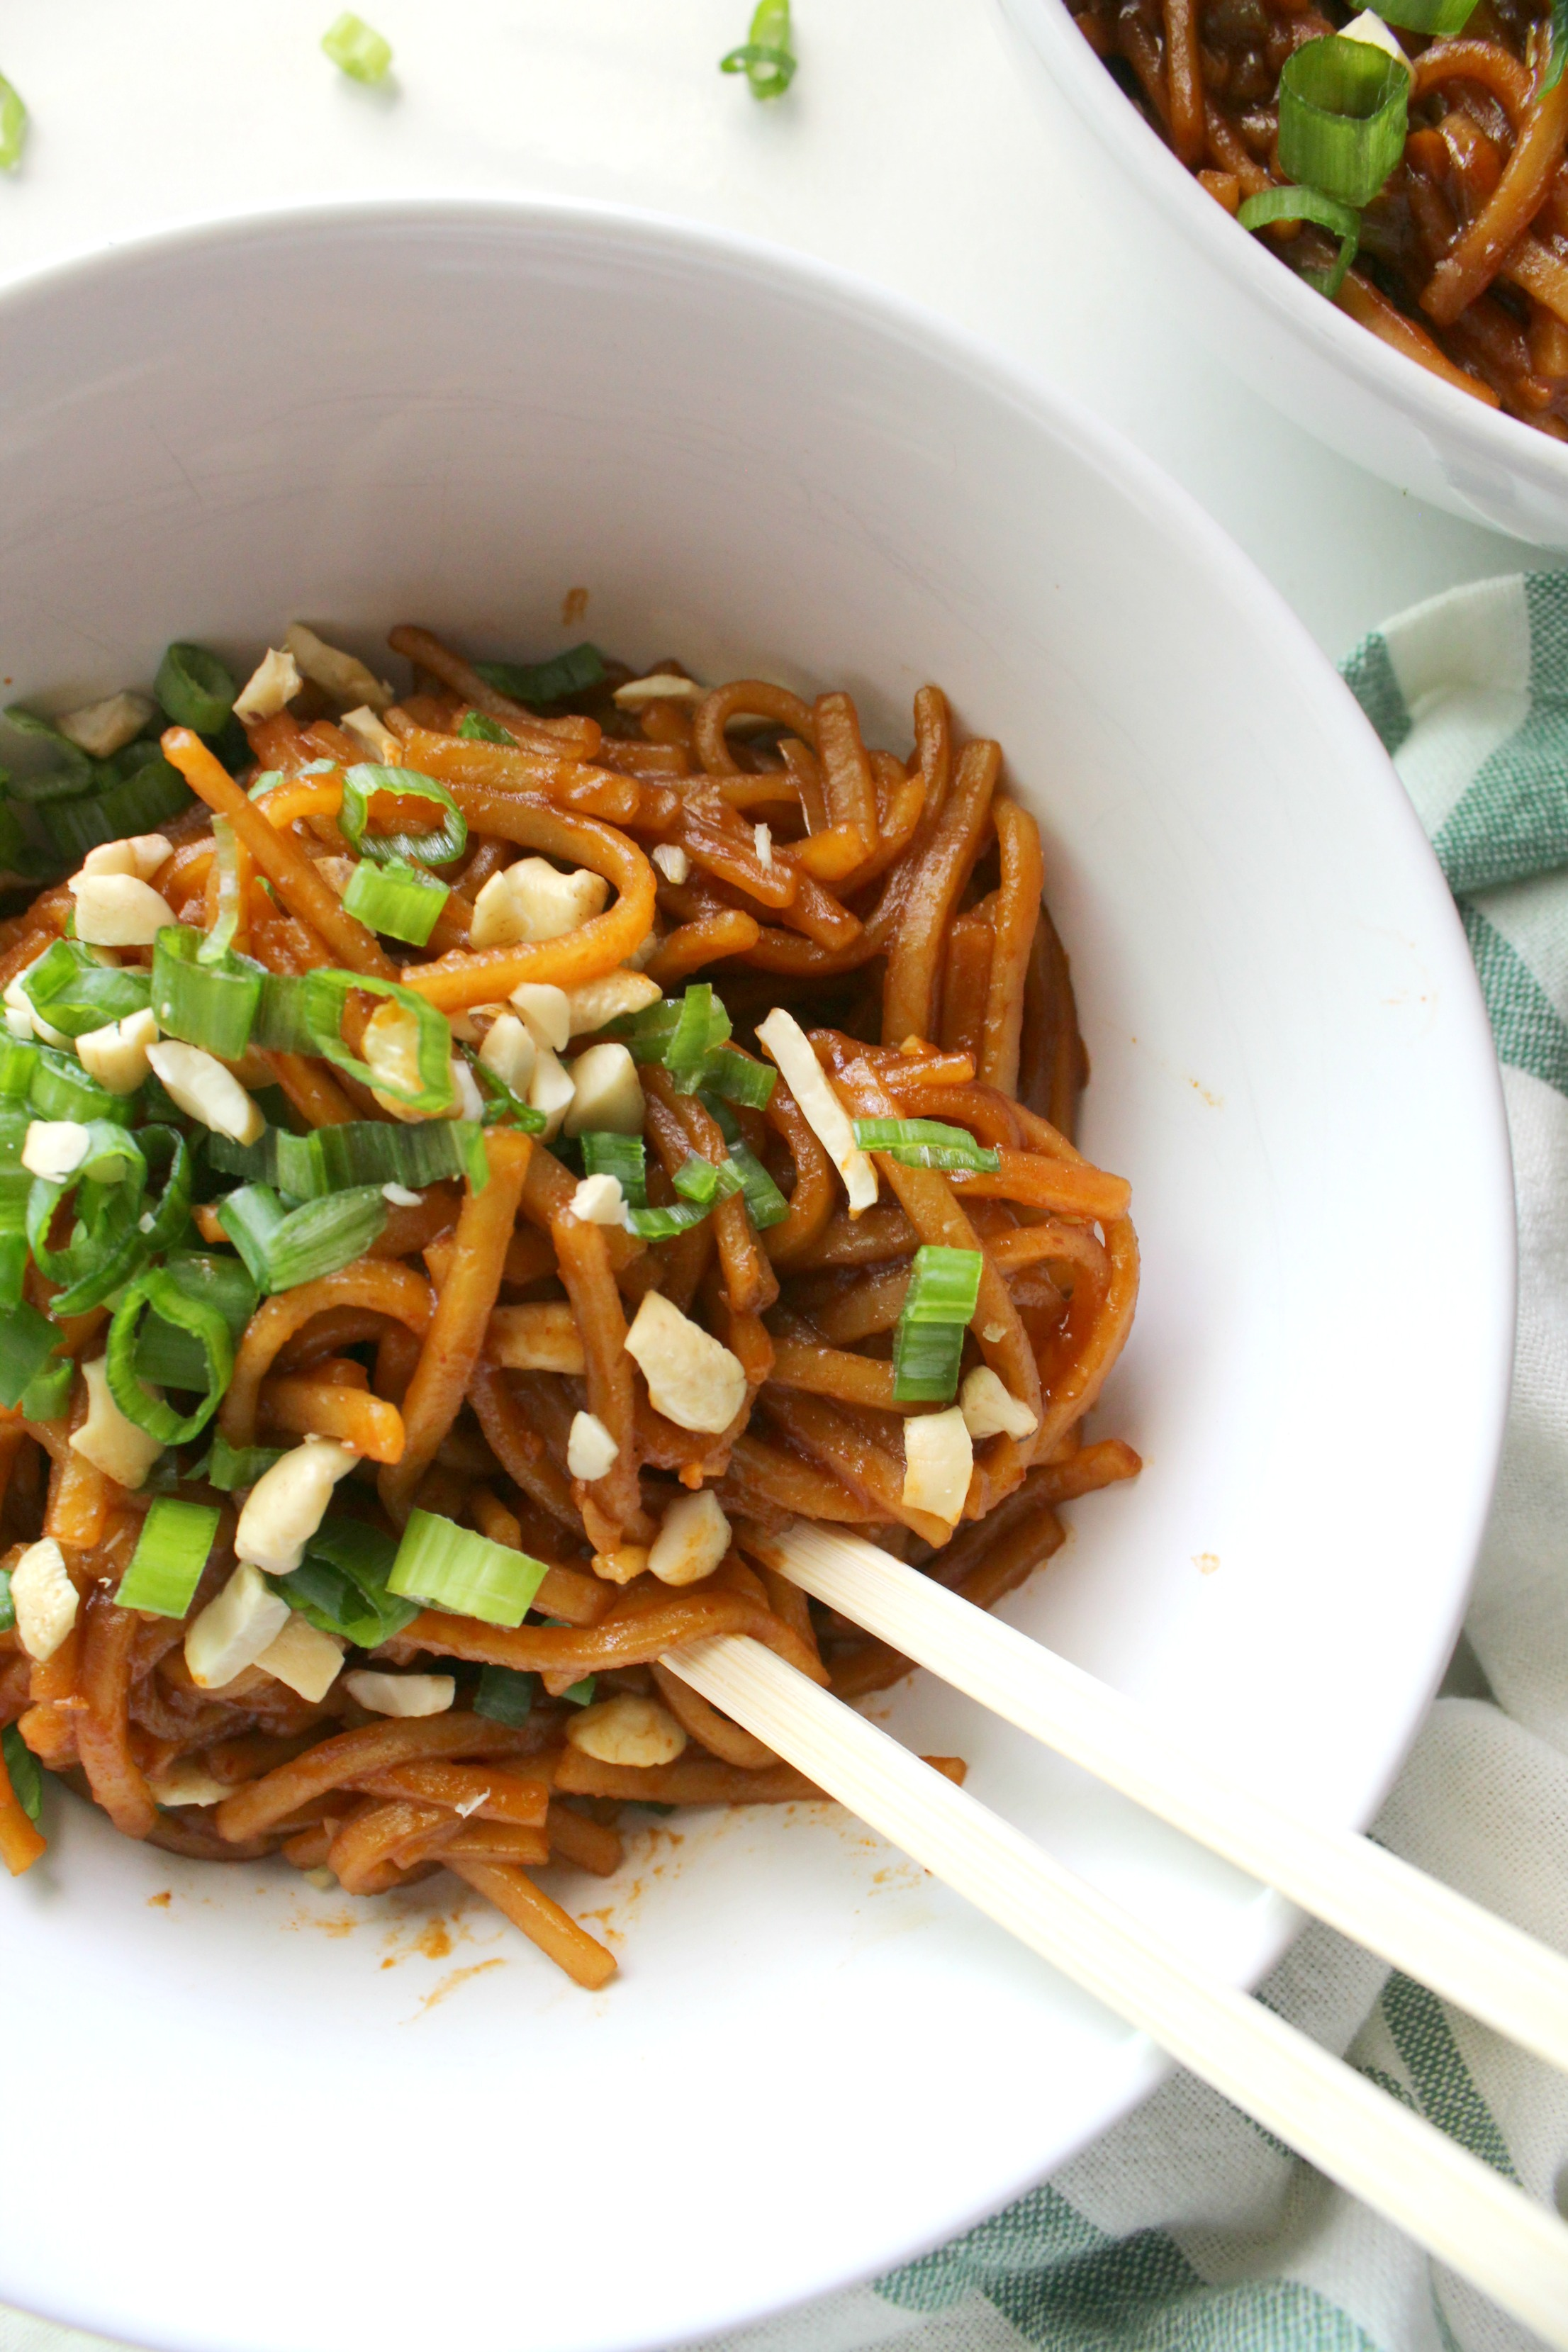 What can you make with rice noodles